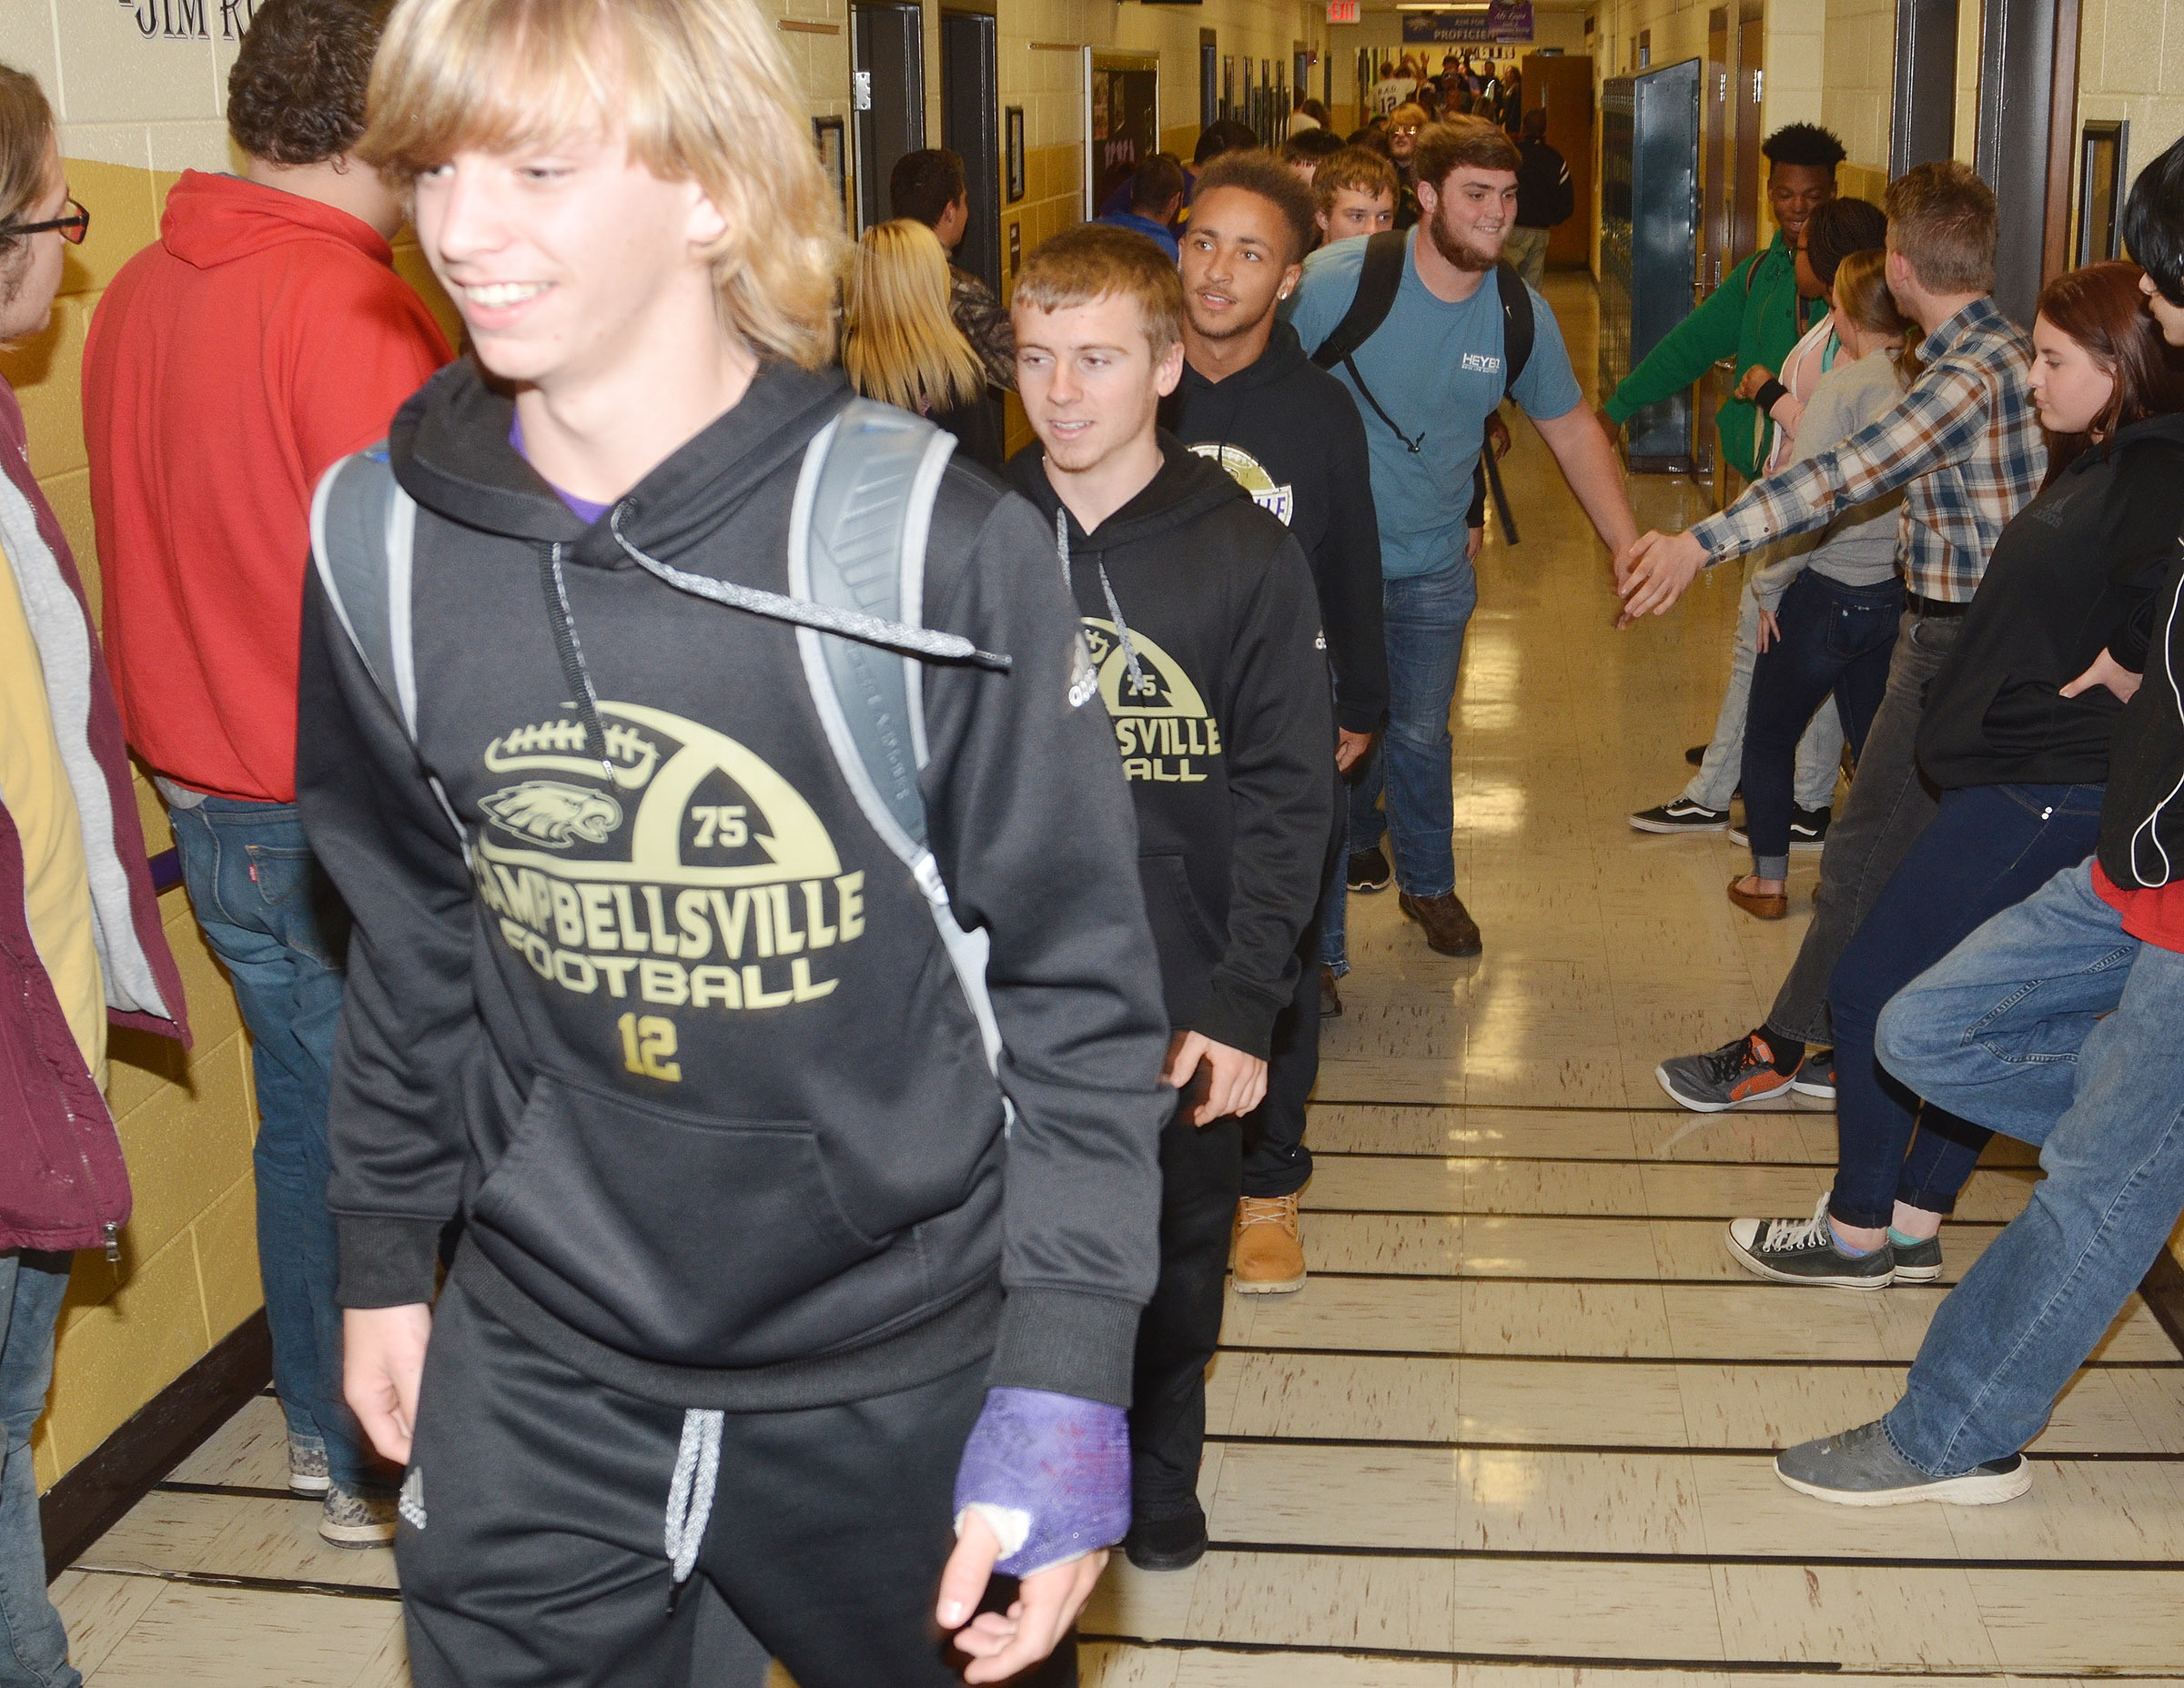 CHS freshman Arren Hash leads his classmates through the CHS hallways.